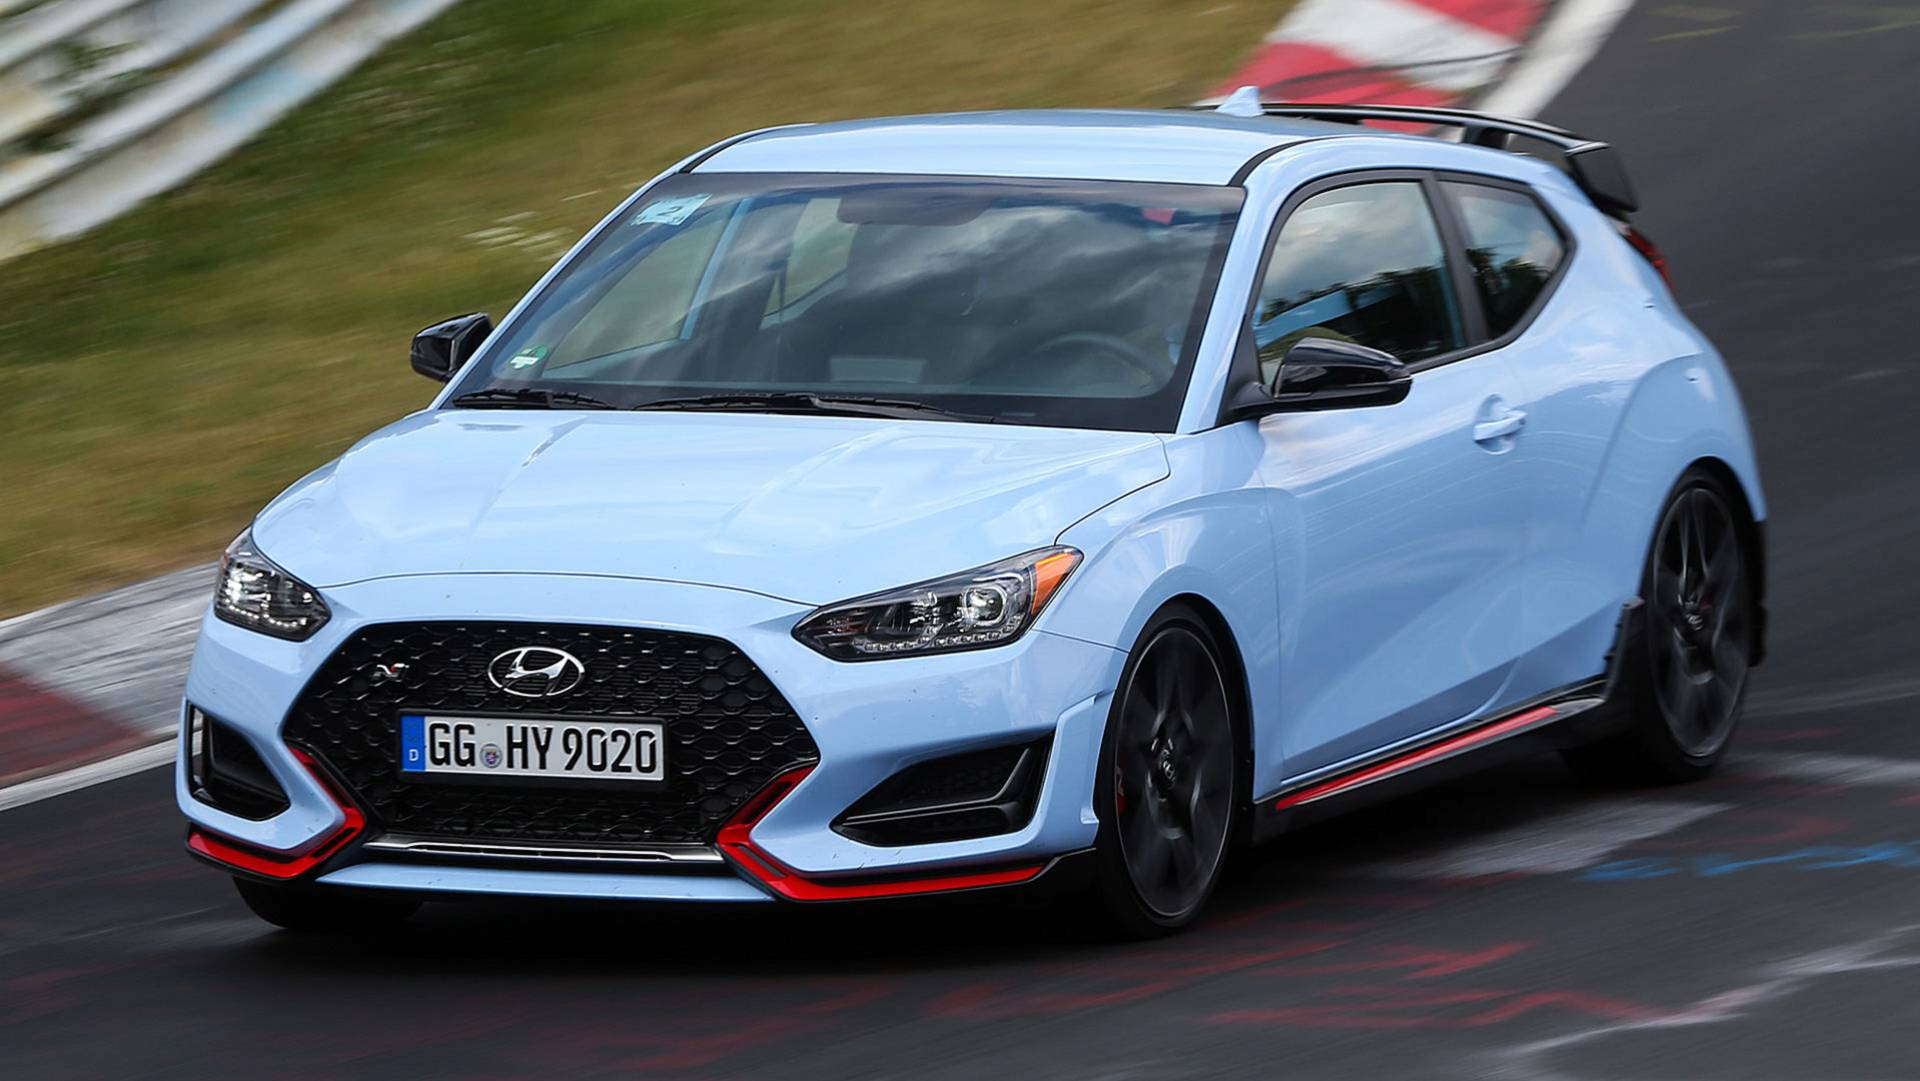 2019 Hyundai Veloster N First Drive: Taking It To The Nth